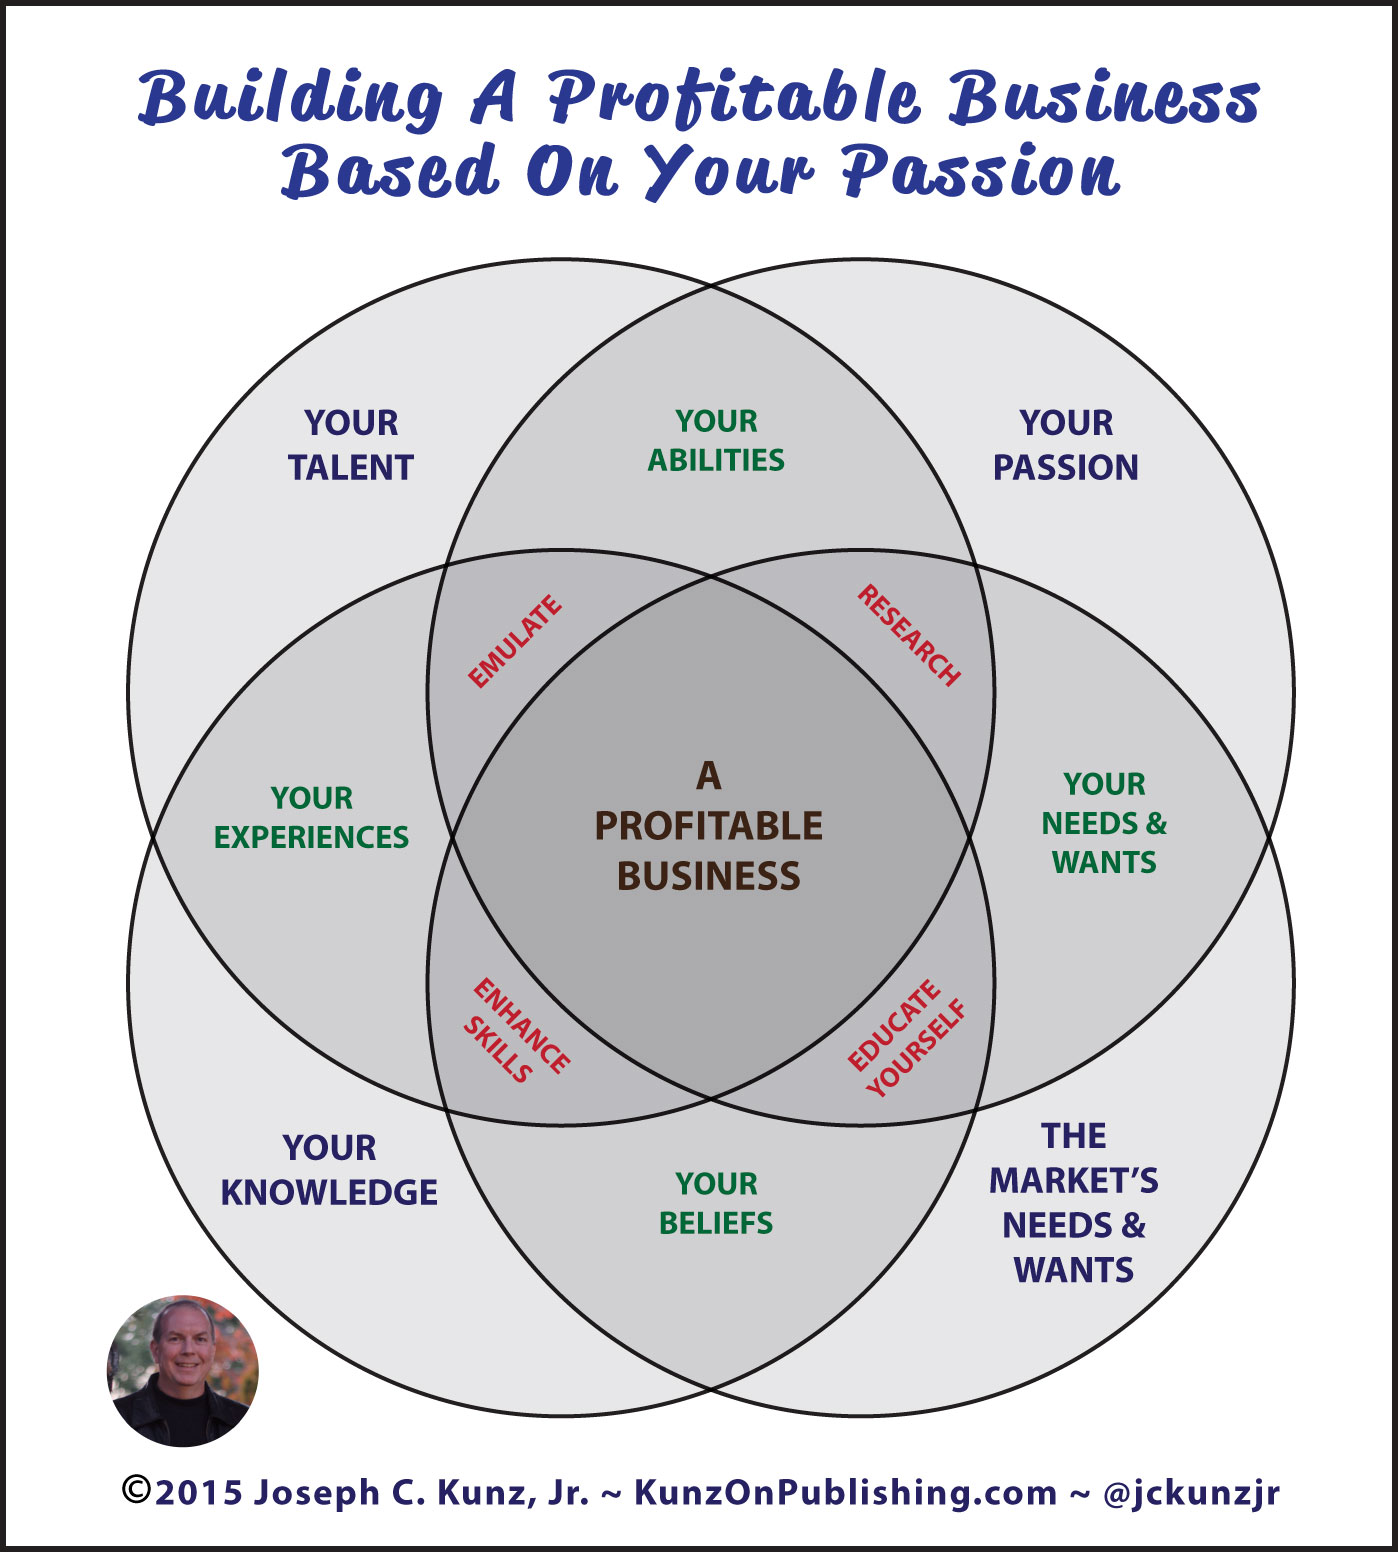 Building A Profitable Business Based On Your Passion Infographic, by Joseph C. Kunz, Jr.